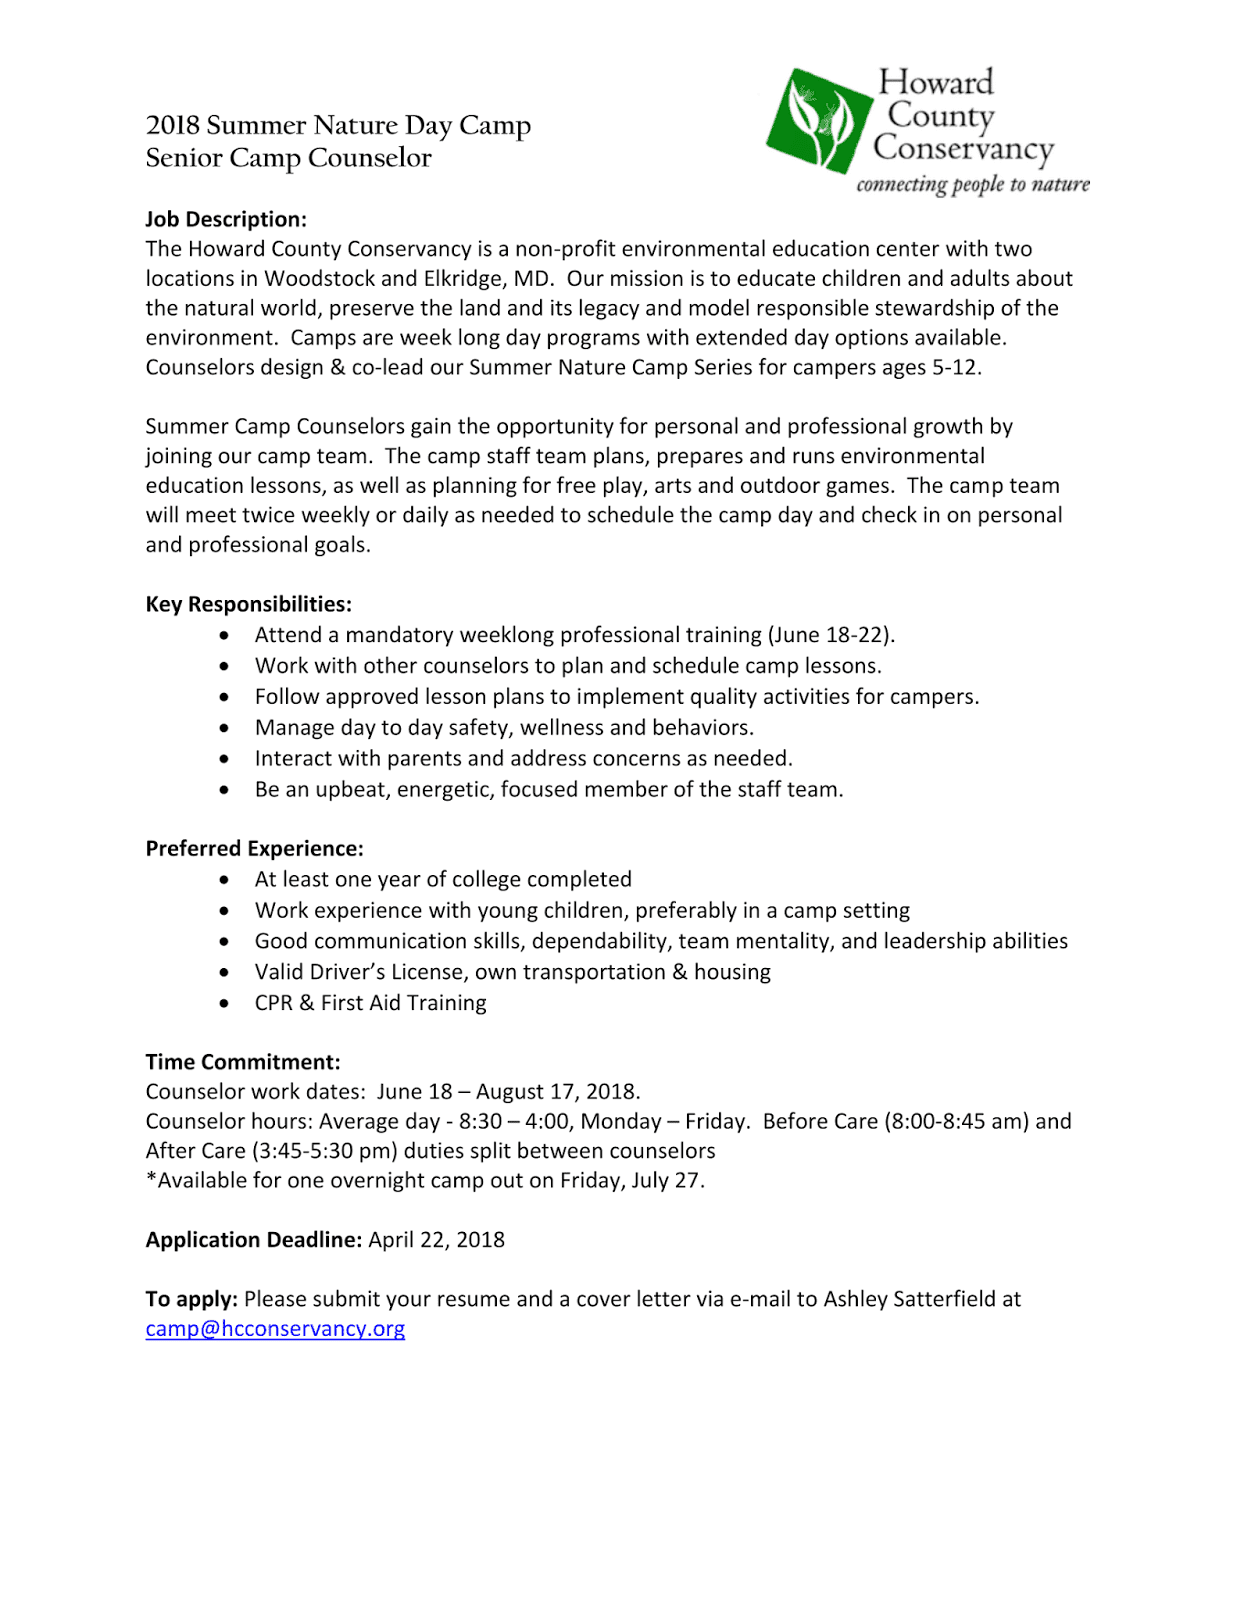 ENST Internship & Job News: Summer Nature Day Camp Counselor ...